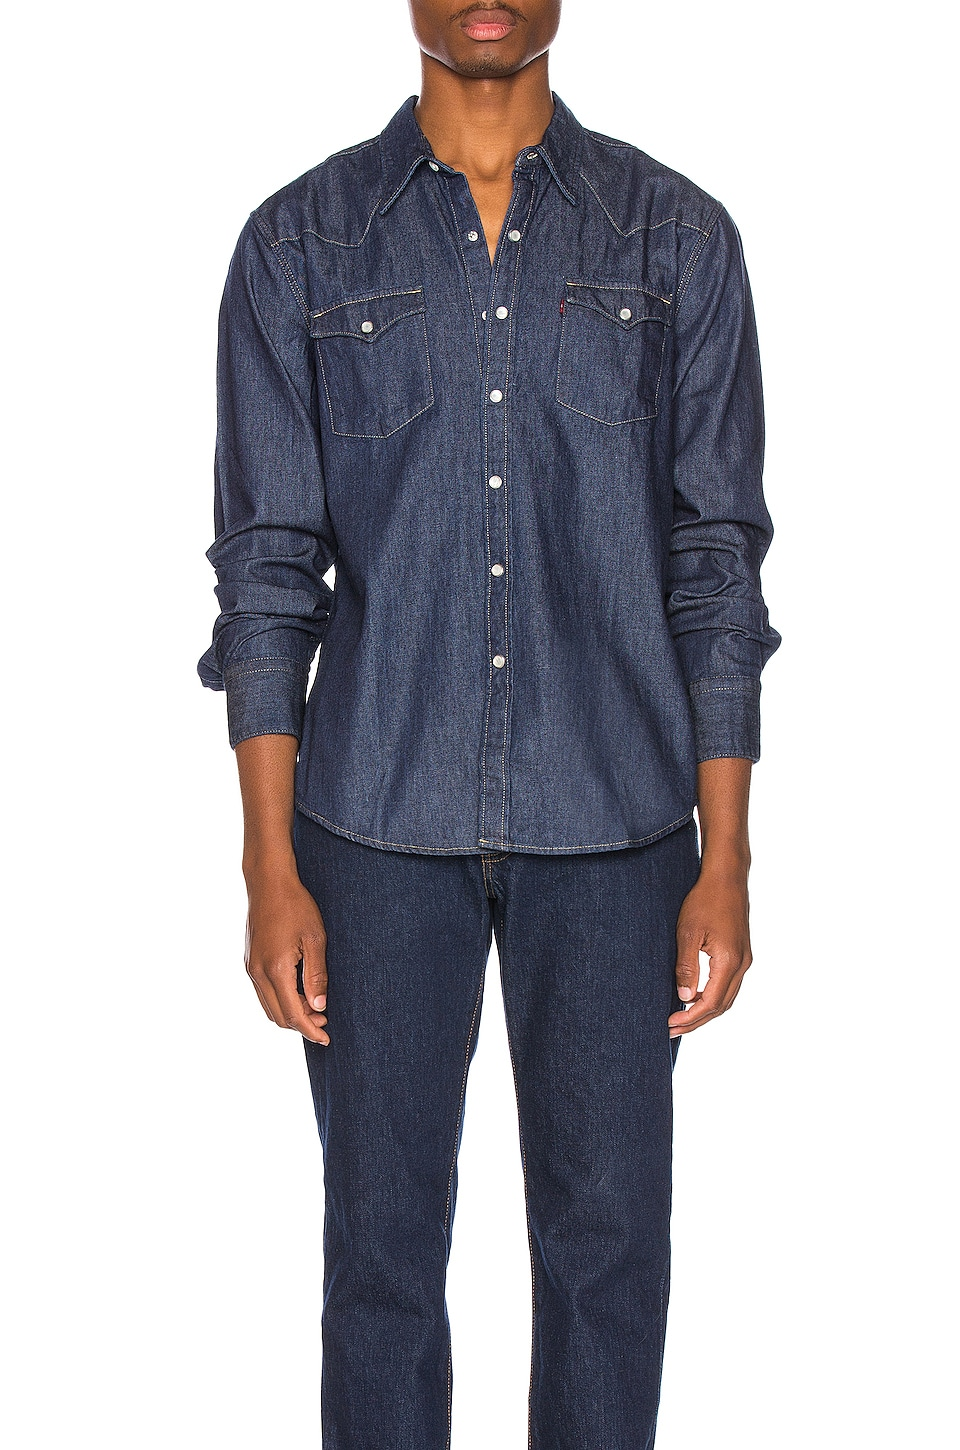 LEVI'S Premium Barstow Western Shirt in Red Cast Rinse